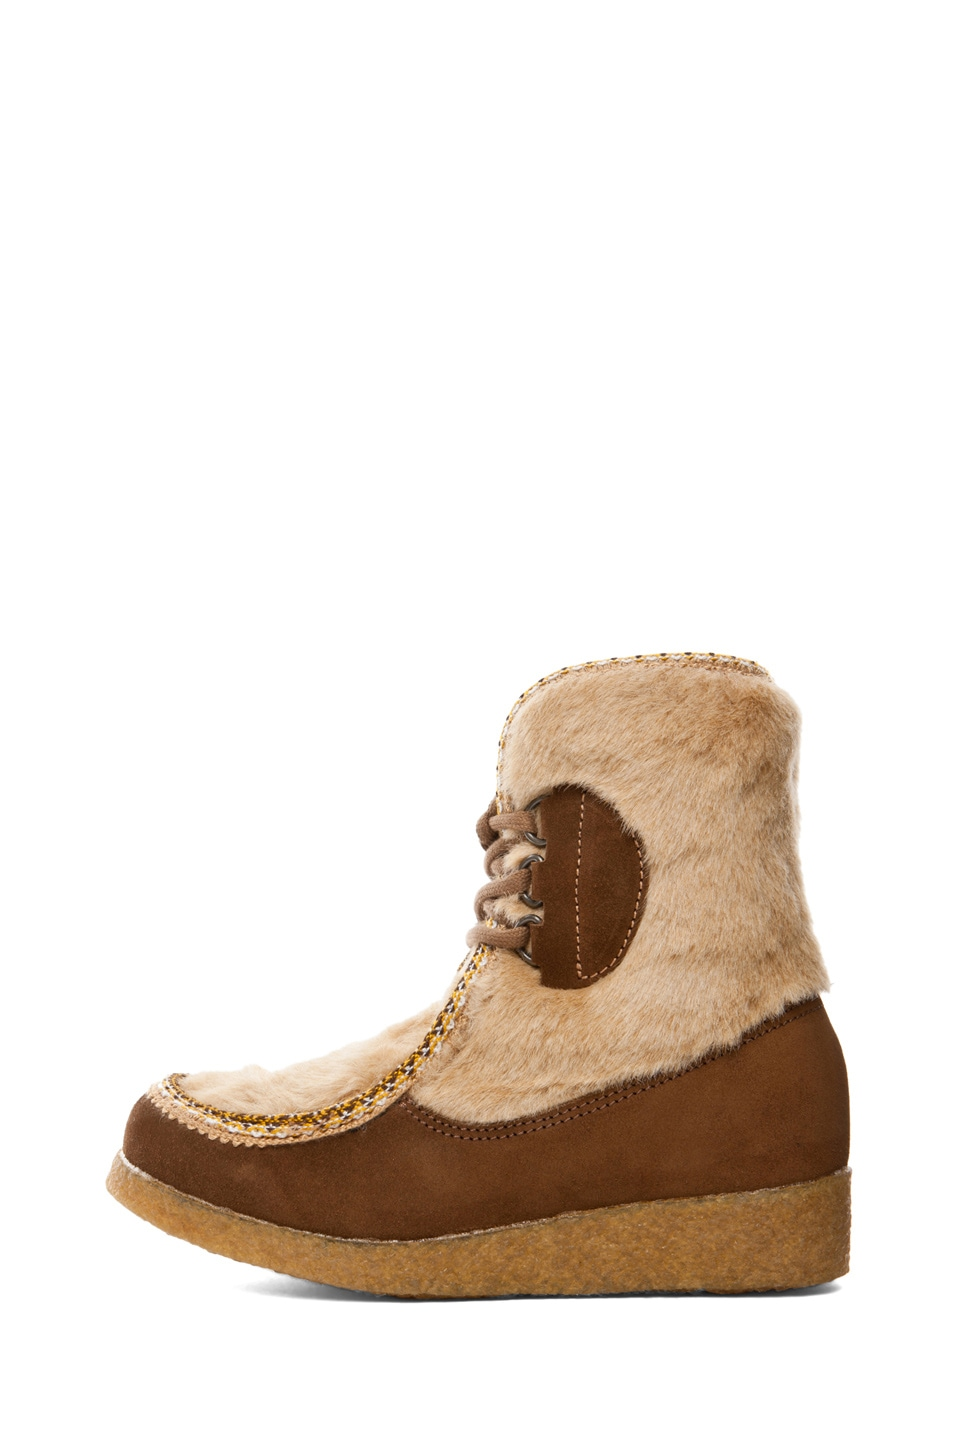 Image 1 of A.P.C. Veau Velours Moccasin Fur Boot in Noisette